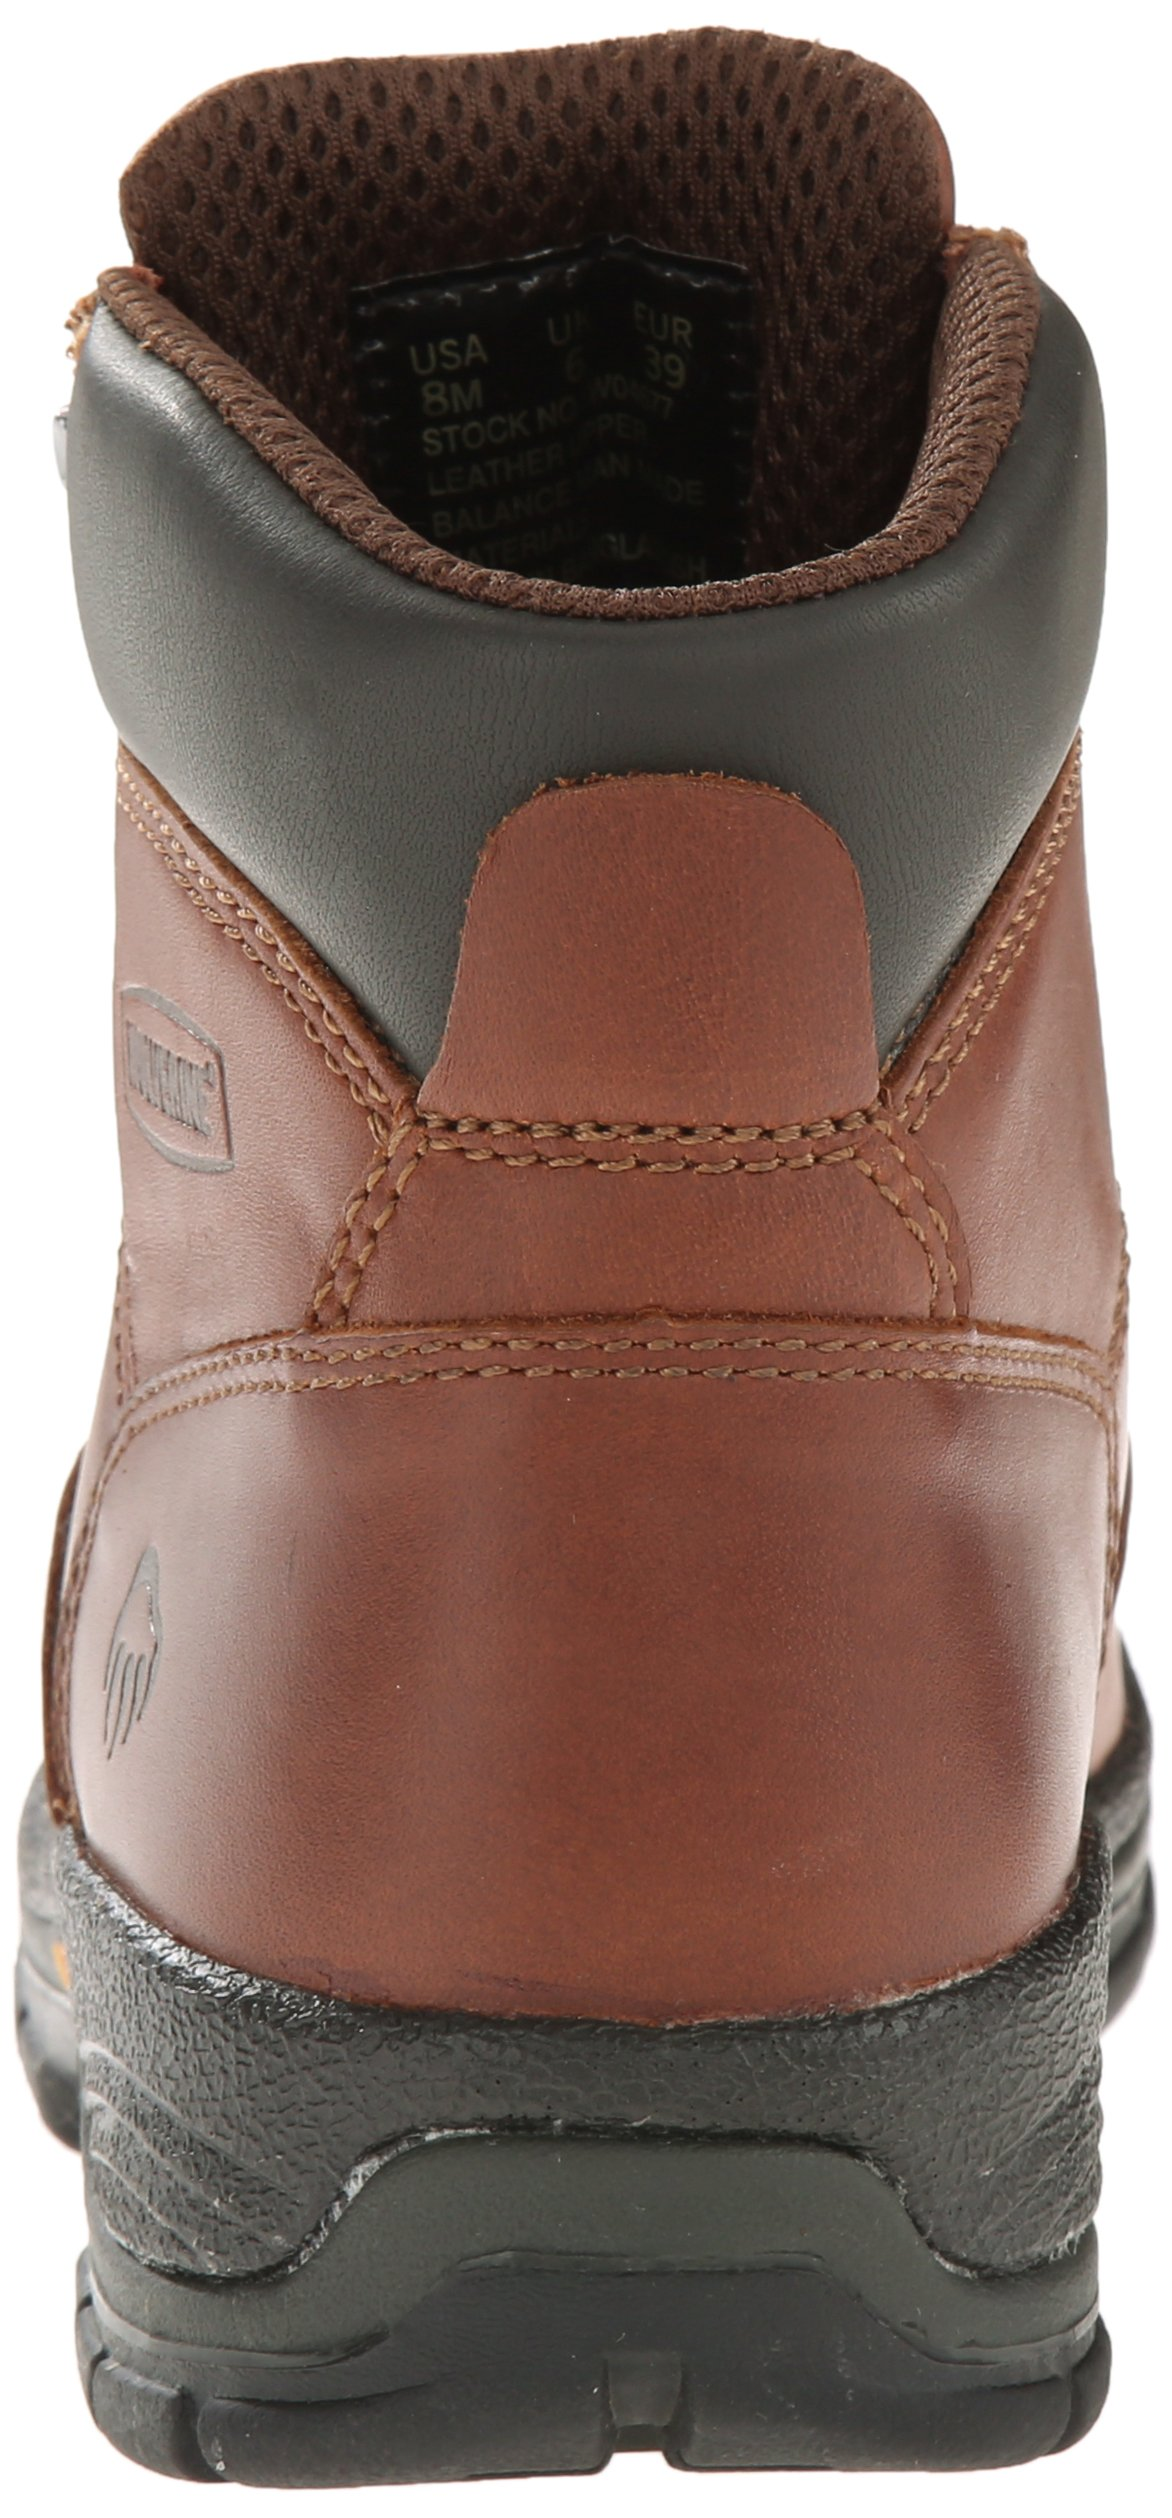 Wolverine Women's Harrison WMS 6'' LACE UP-W, Brown, 10 M US by Wolverine (Image #2)